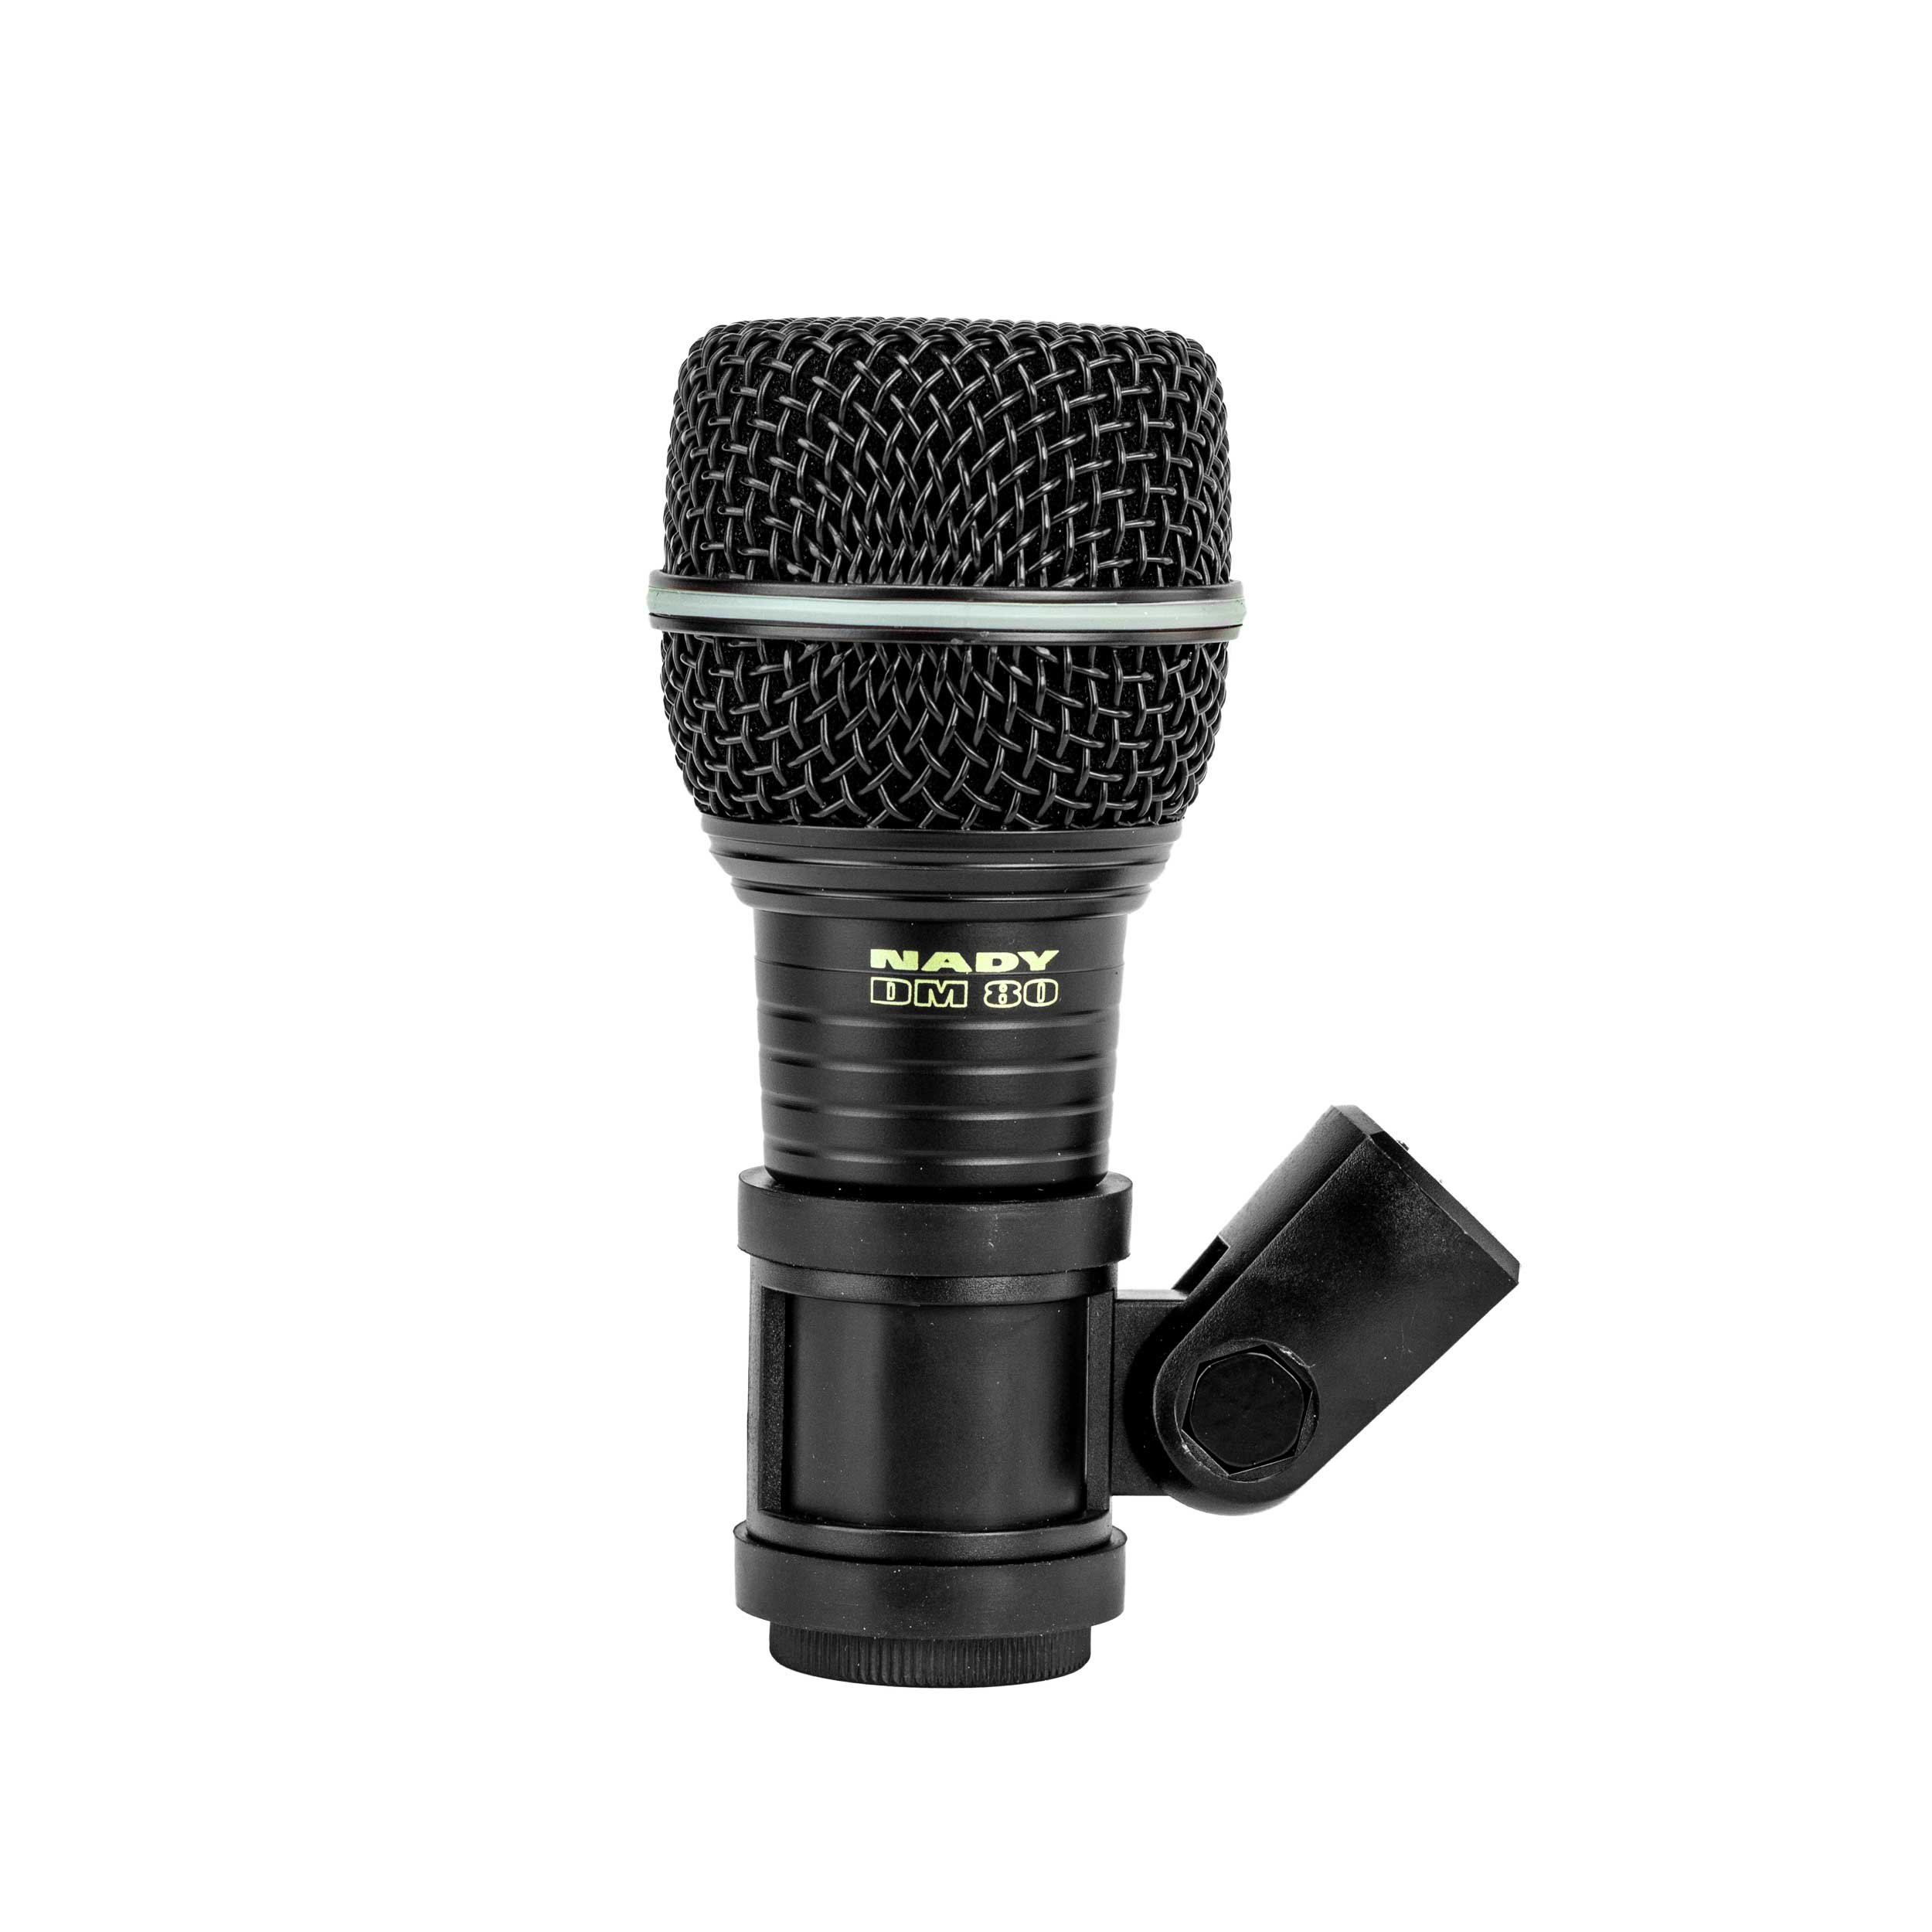 Nady DM-80 Drum Microphone - Enhanced low frequency response for kick drums, Neodymium element, all-metal construction and rubber mount to minimize vibration by Nady